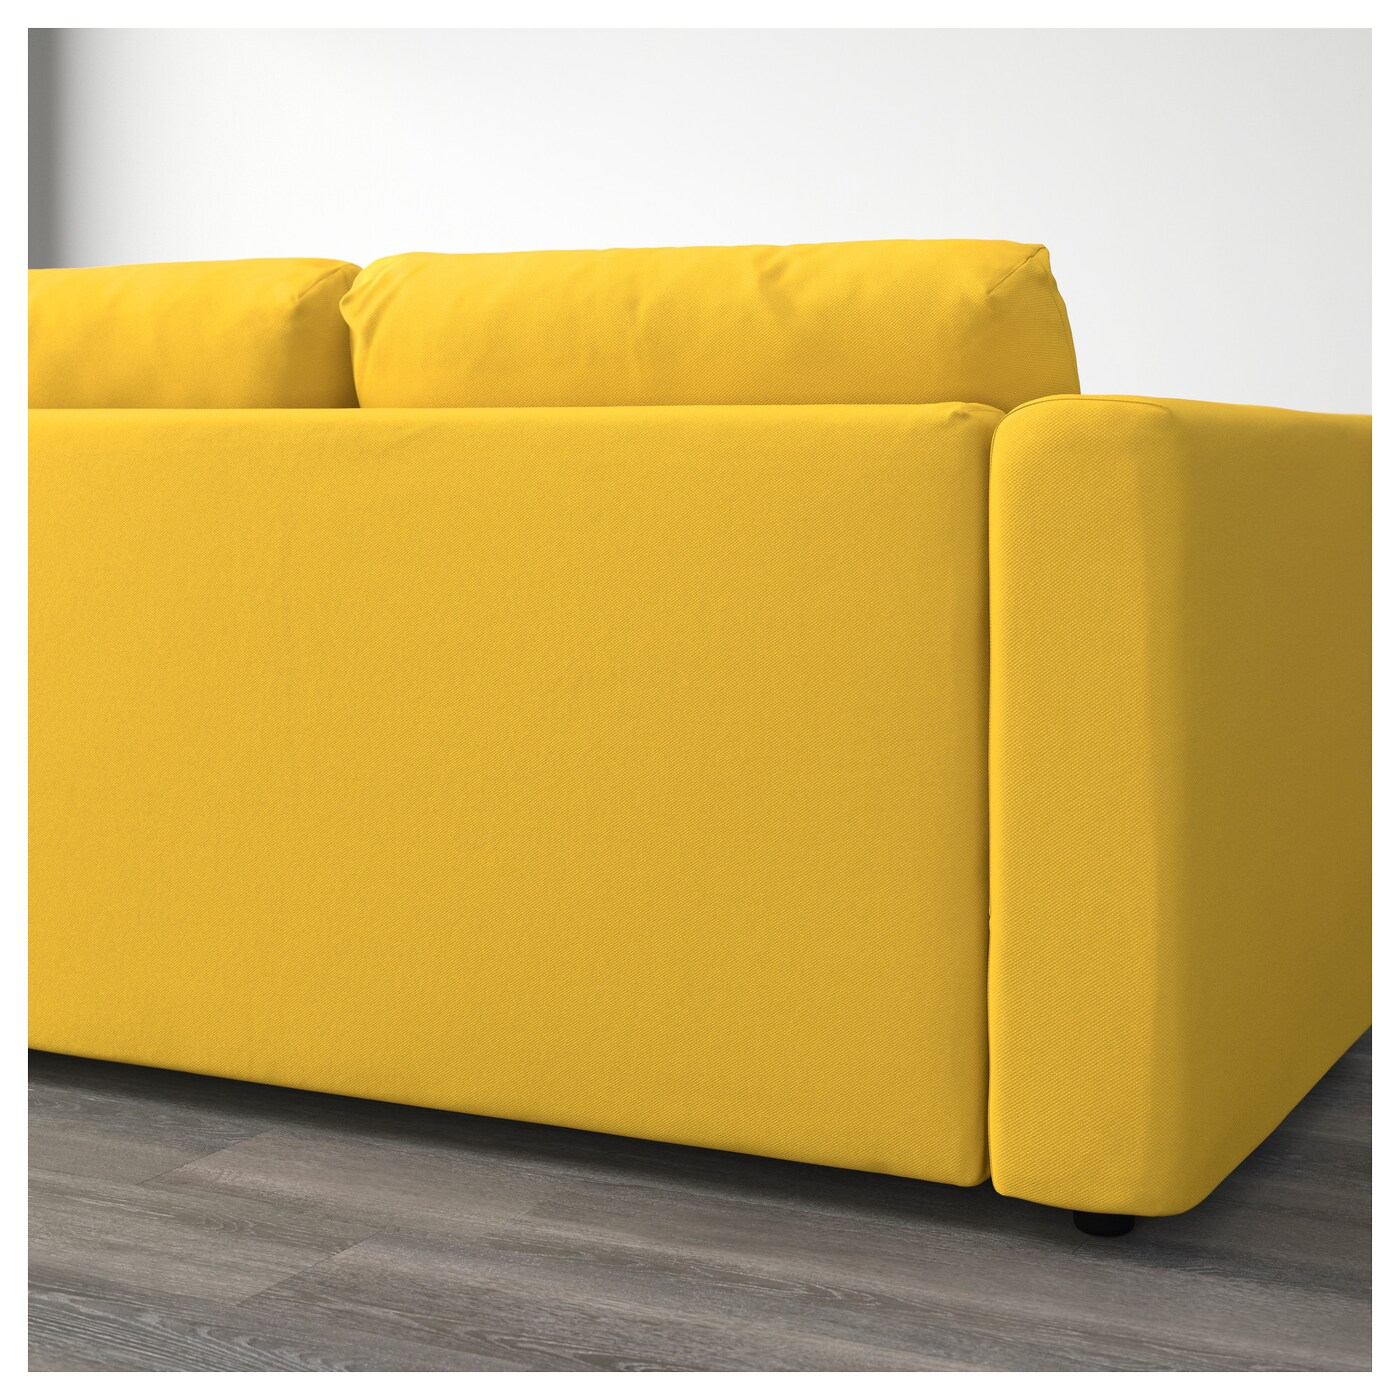 VIMLE 3 seat sofa Gräsbo golden yellow IKEA